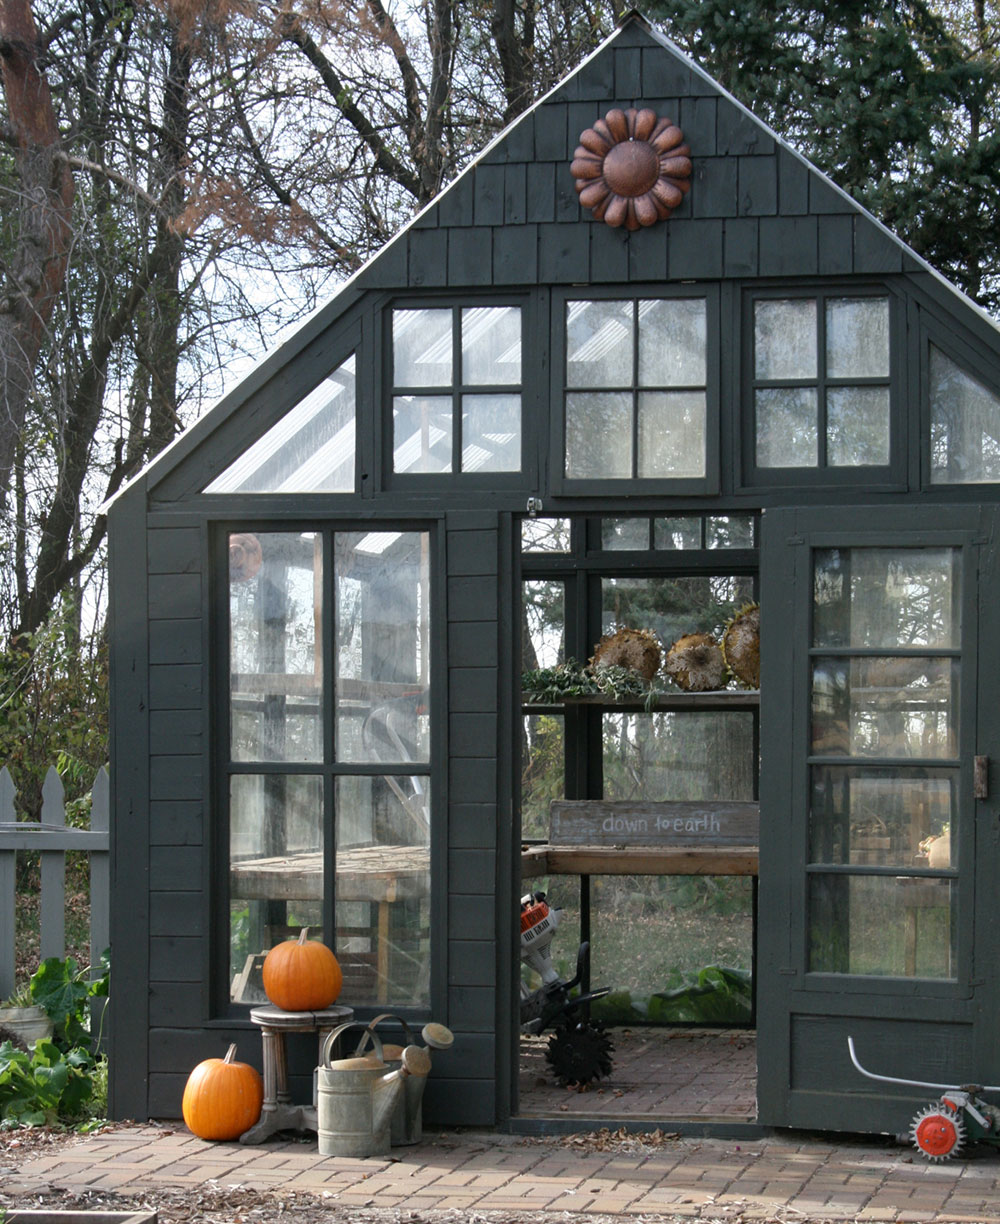 Greenhouse made with recycled materials